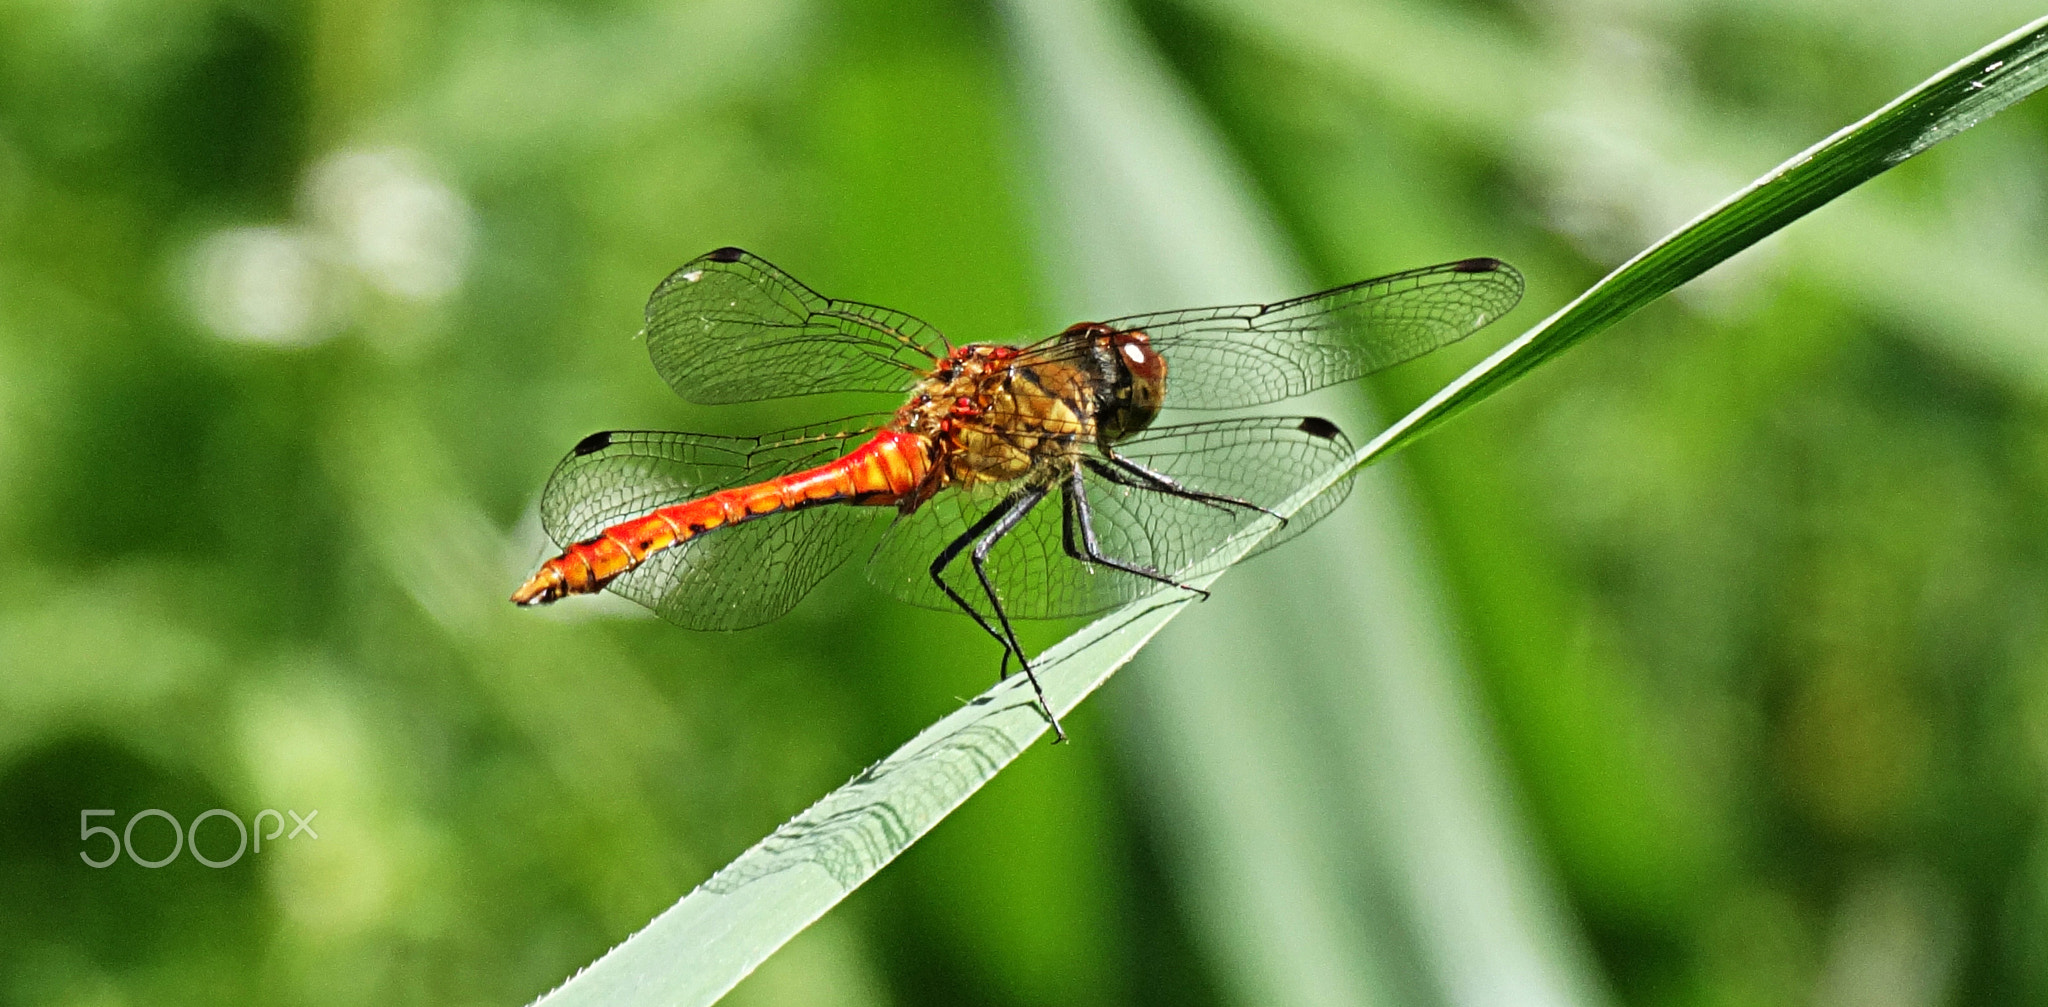 Photograph Yellow-winged darter by Edmond Dantès on 500px